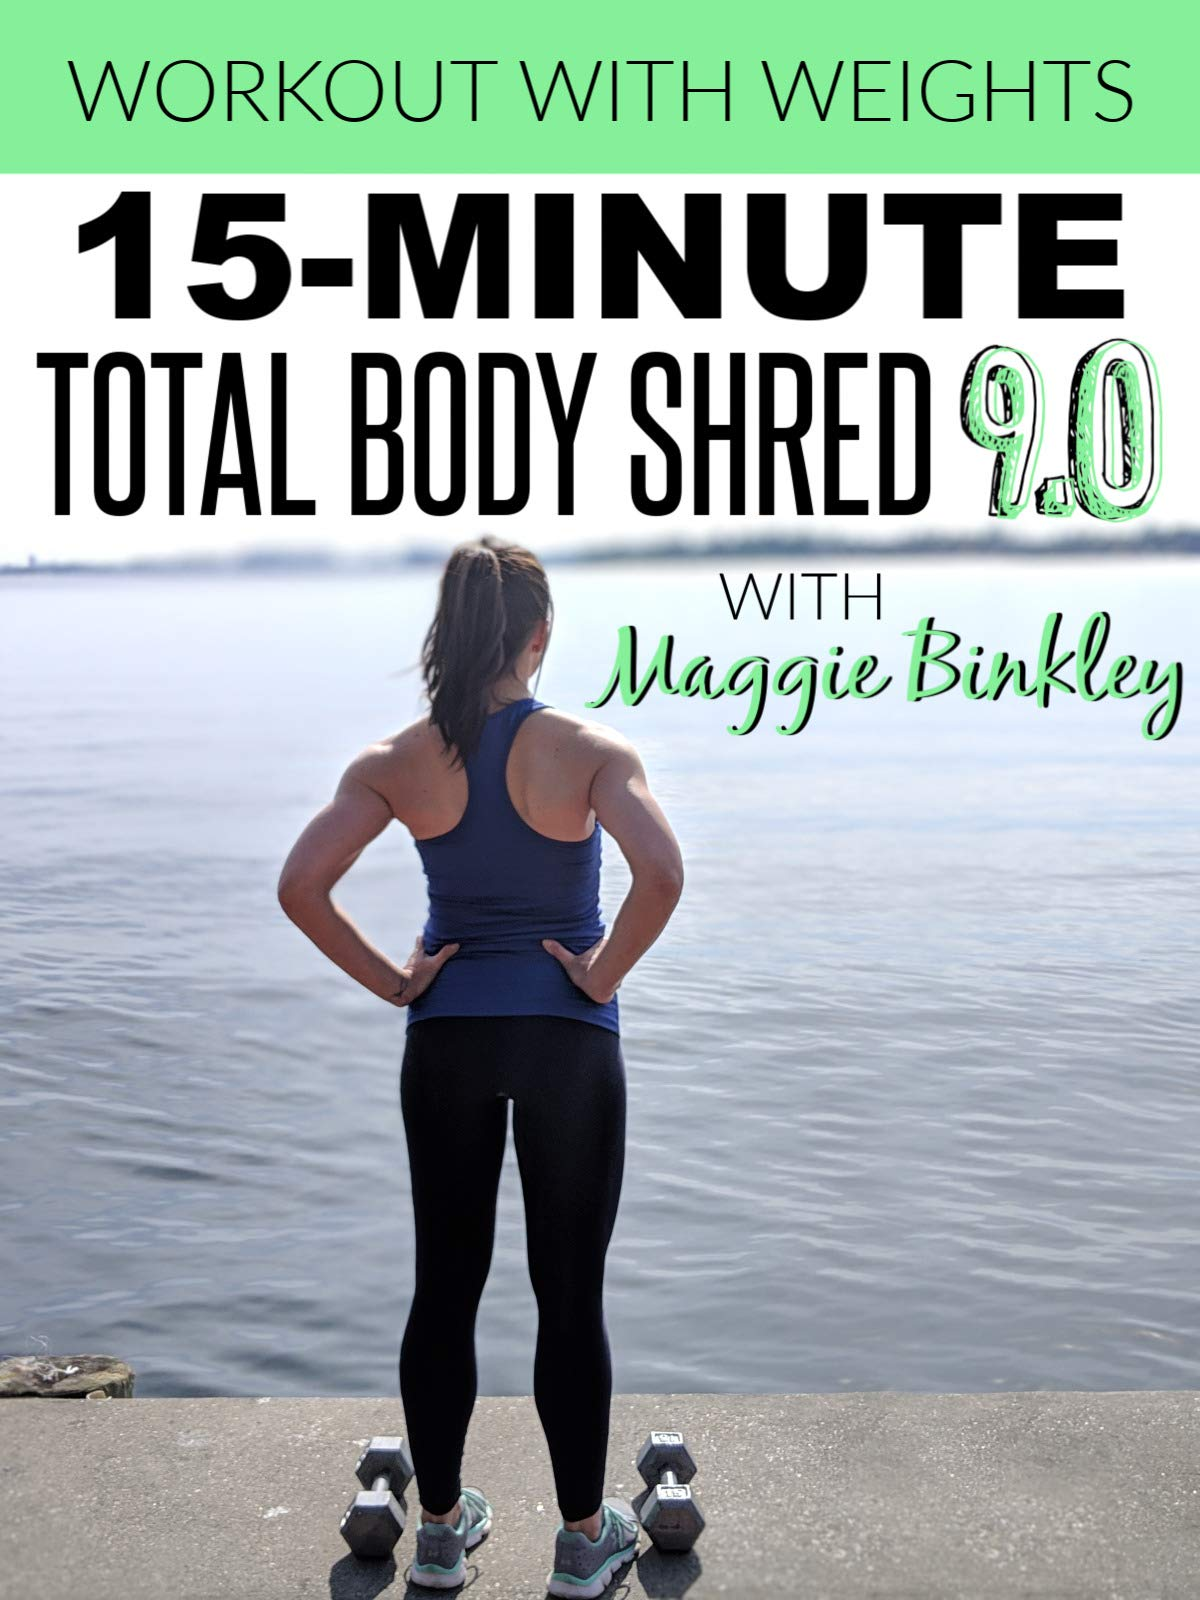 15-Minute Total Body Shred 9.0 Workout (with weights)